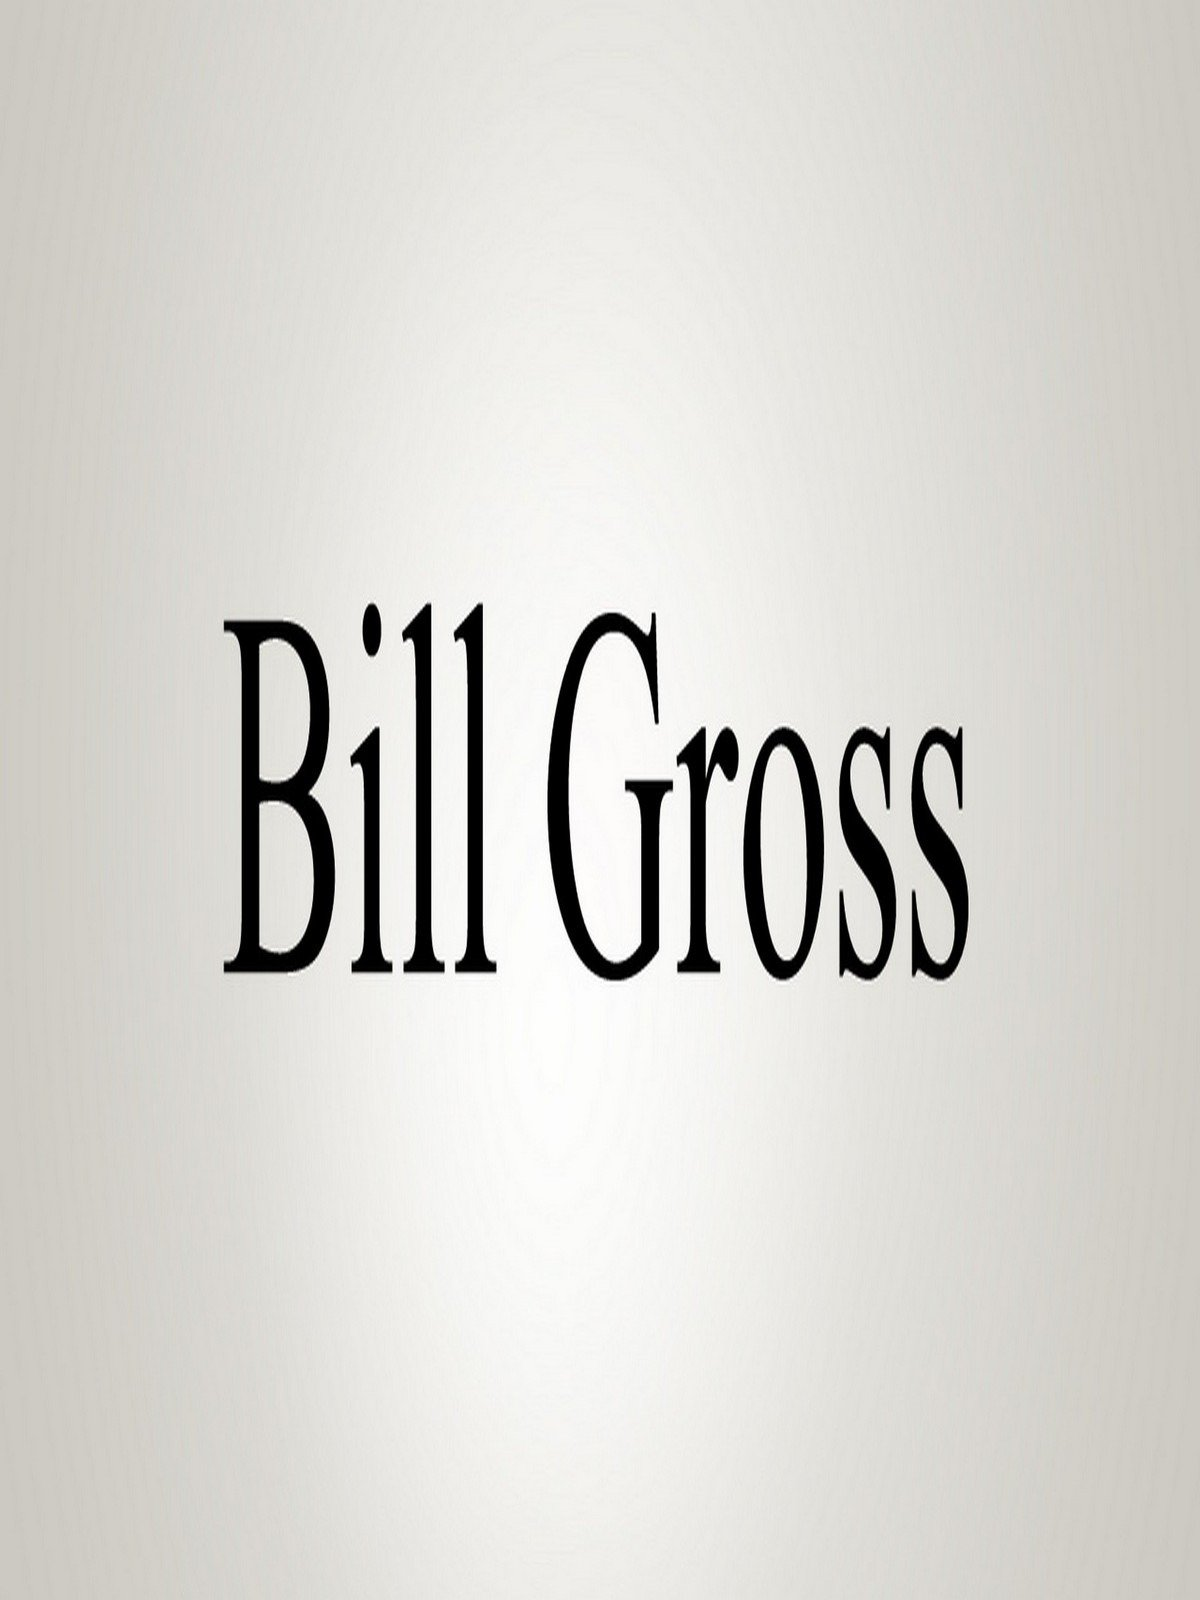 Watch How To Pronounce Bill Gross  Prime Video